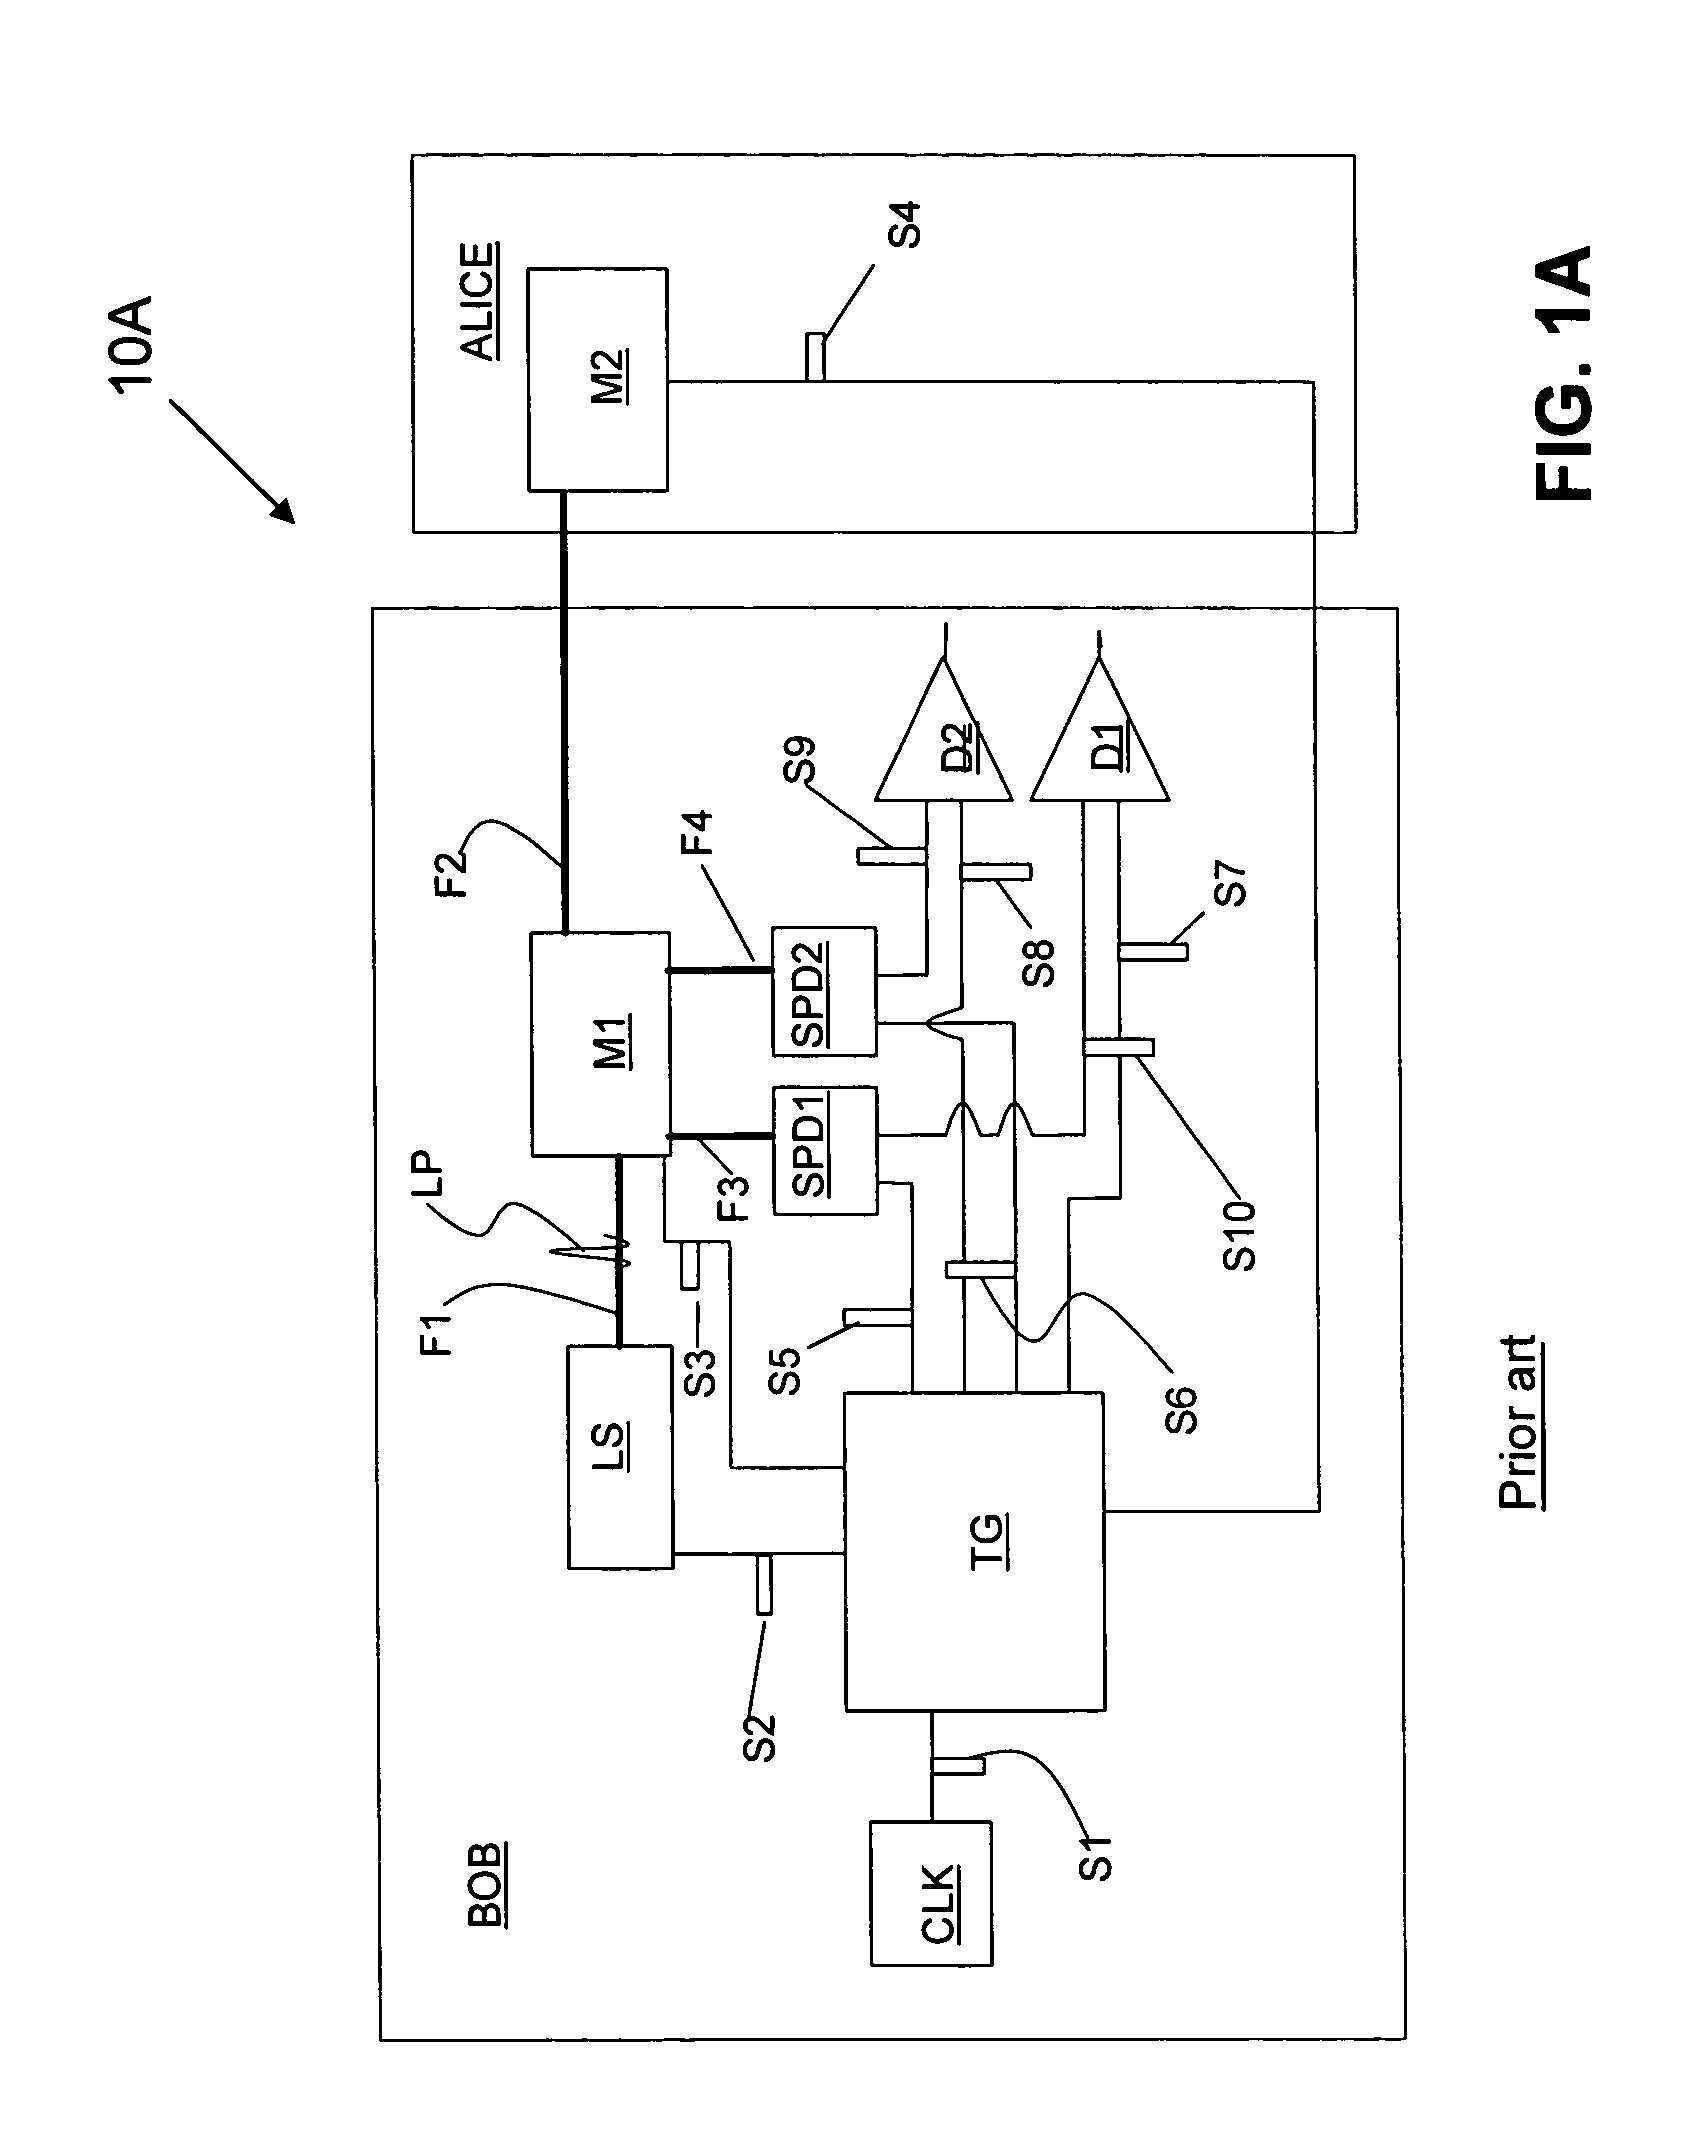 Patent Us7409162 Timing Error Reduction In Qkd Systems Google Electronic Coin Toss Circuit Diagram Circuits Drawing